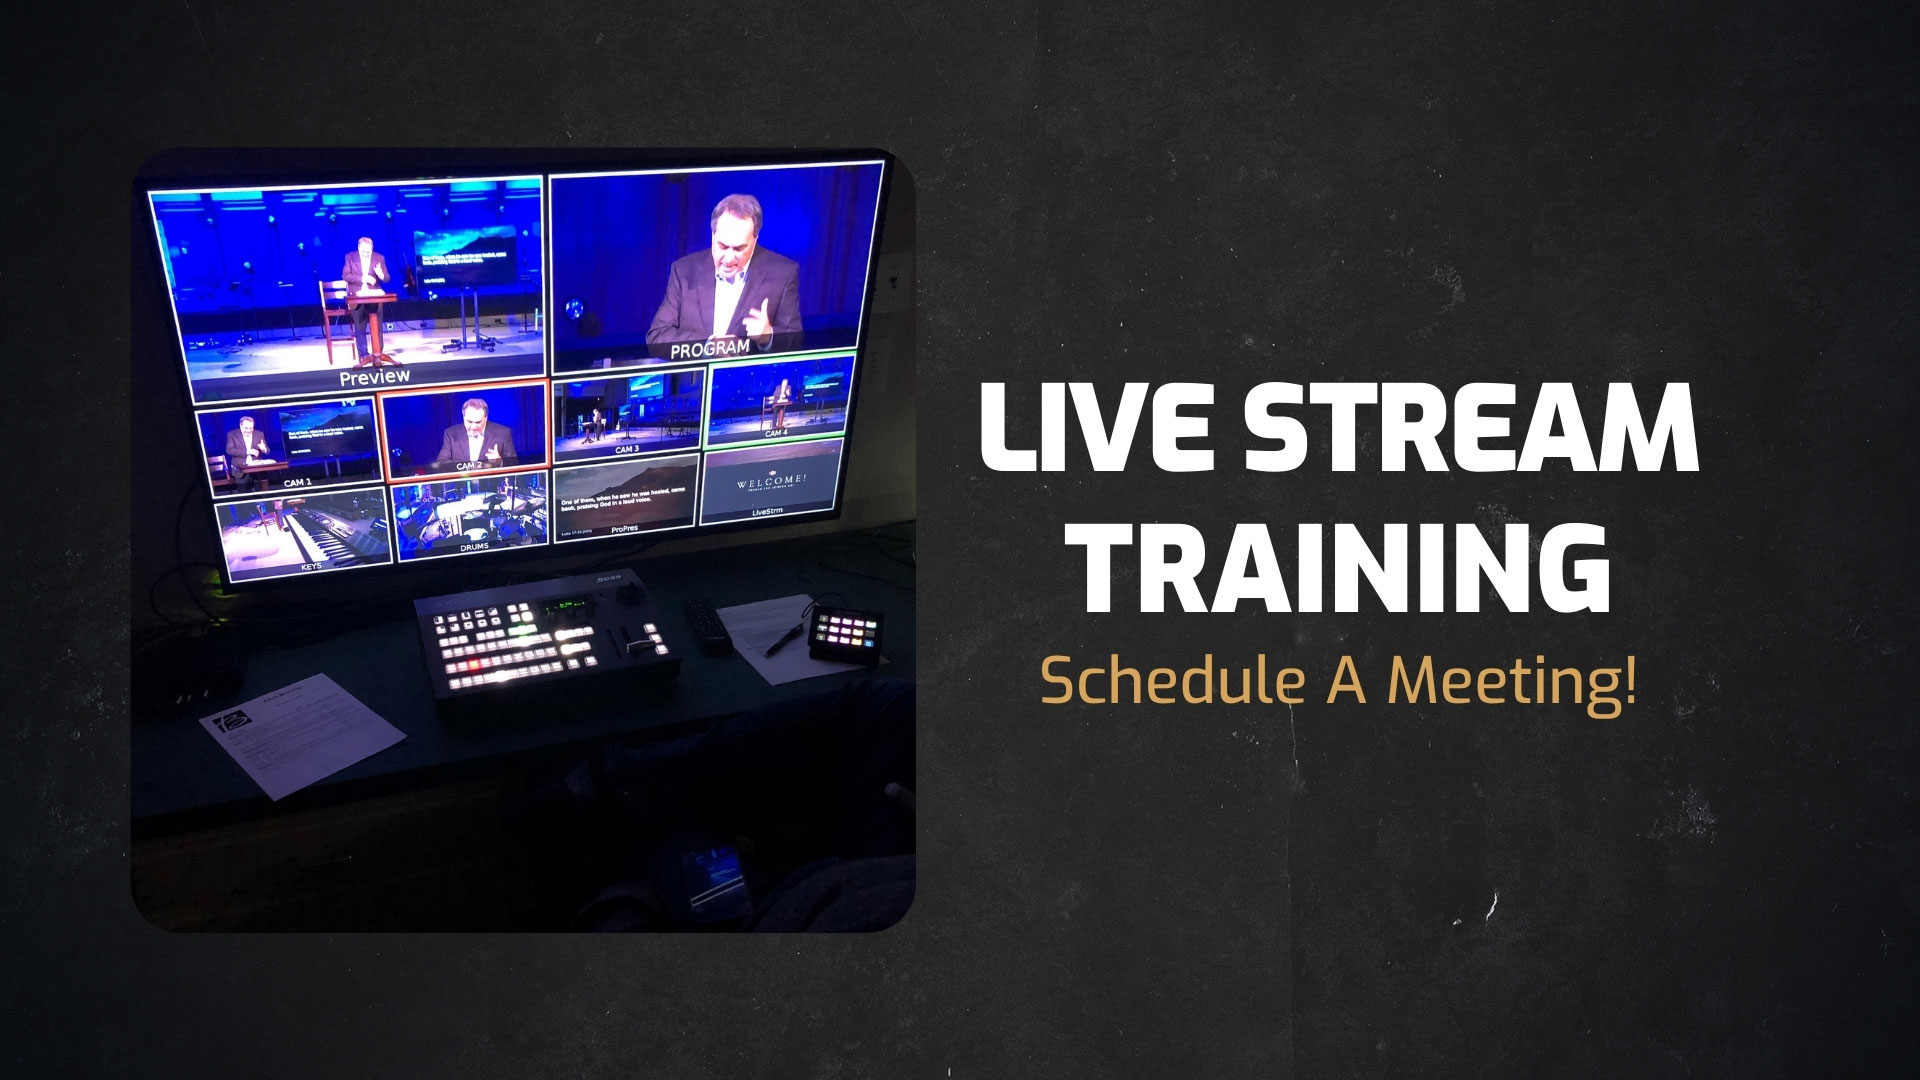 Live Stream Training